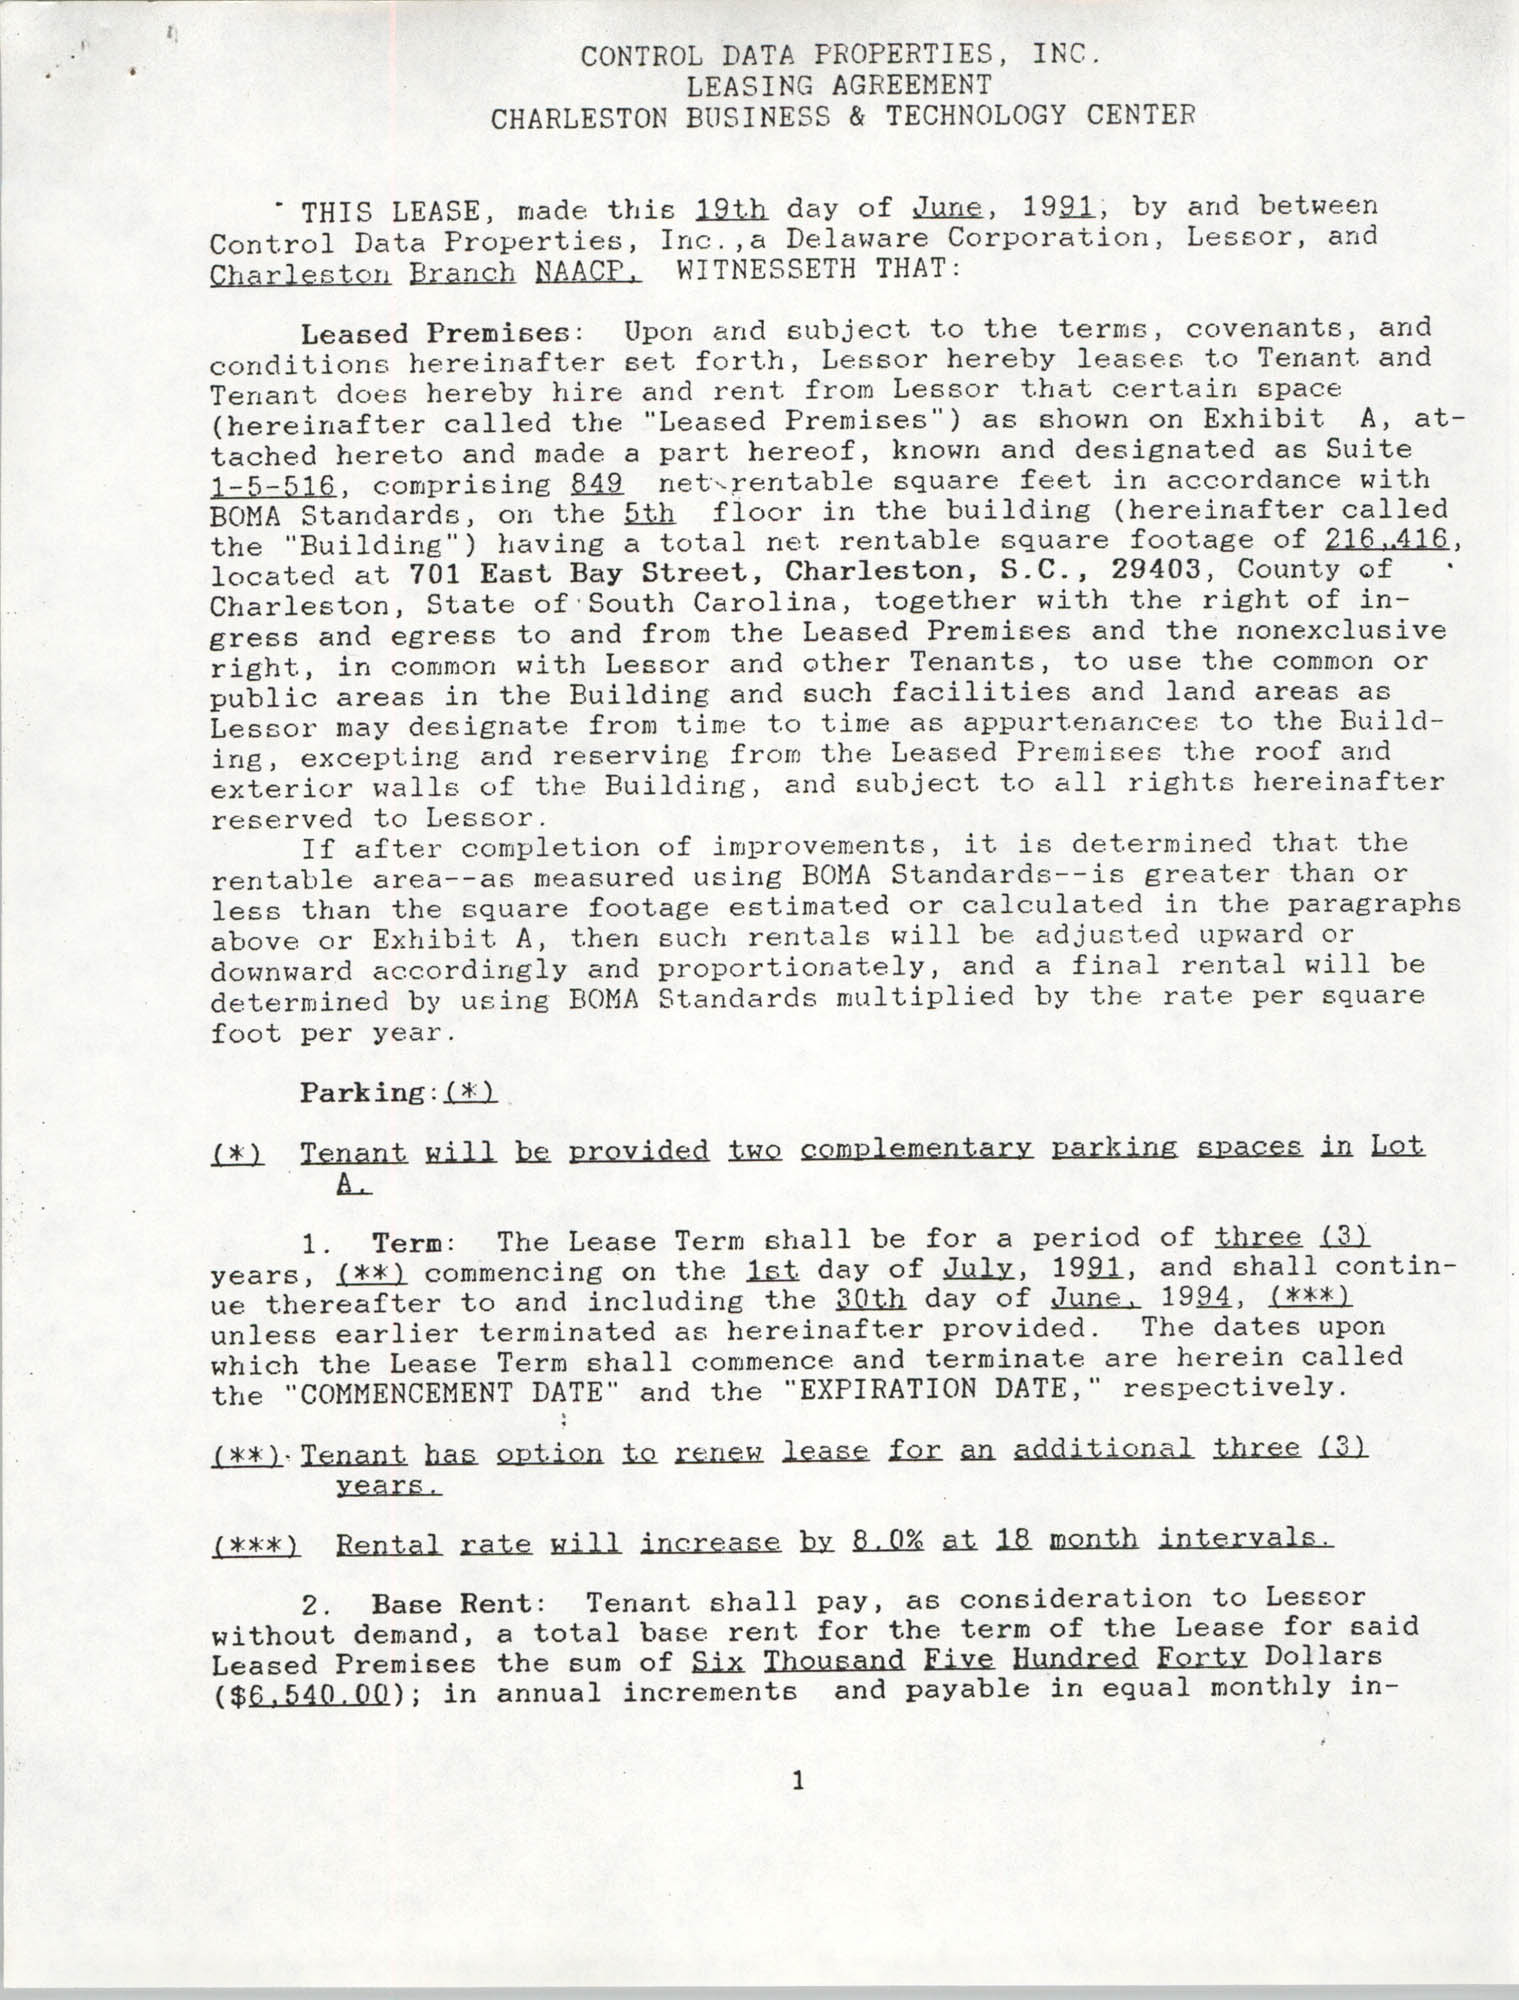 Charleston Branch of the NAACP Leasing Agreement, June 1991 to June 1994, Page 1